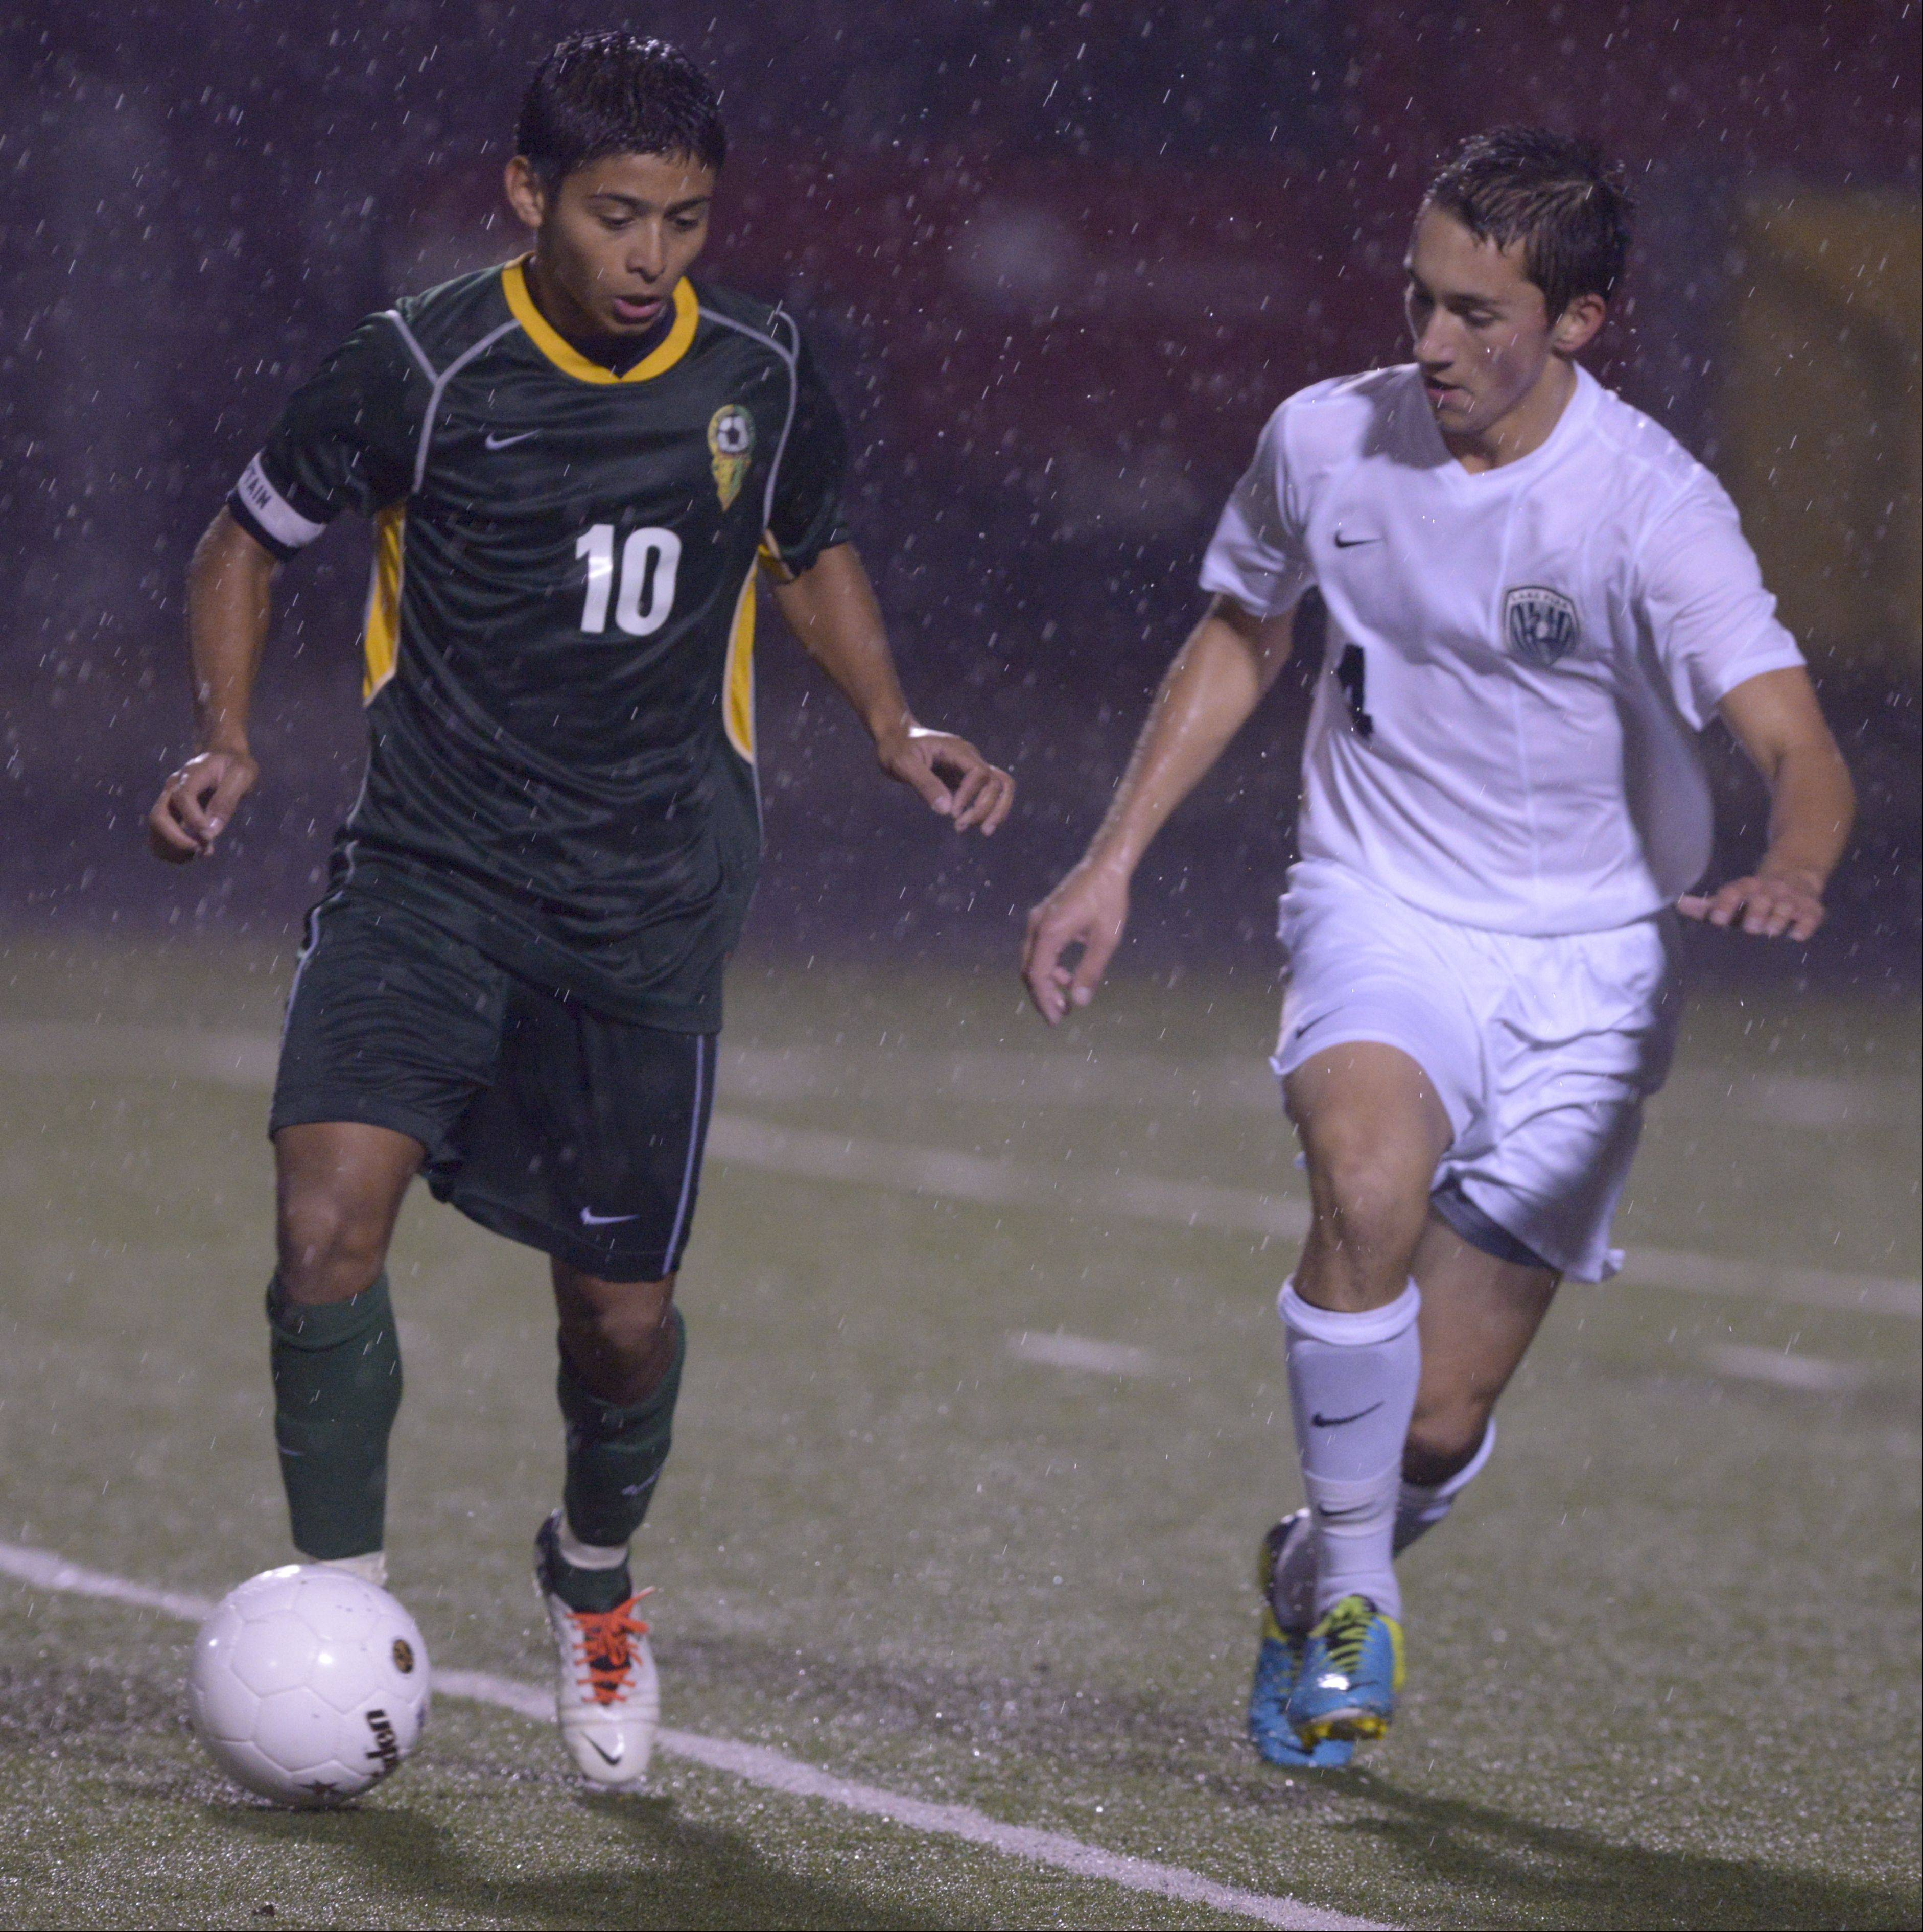 Jonathon Arzeta of Elk Grove and Anthony Devereux of Lake Park battle for control of the ball during in the Class 3A Schaumburg sectional semifinals Wednesday.